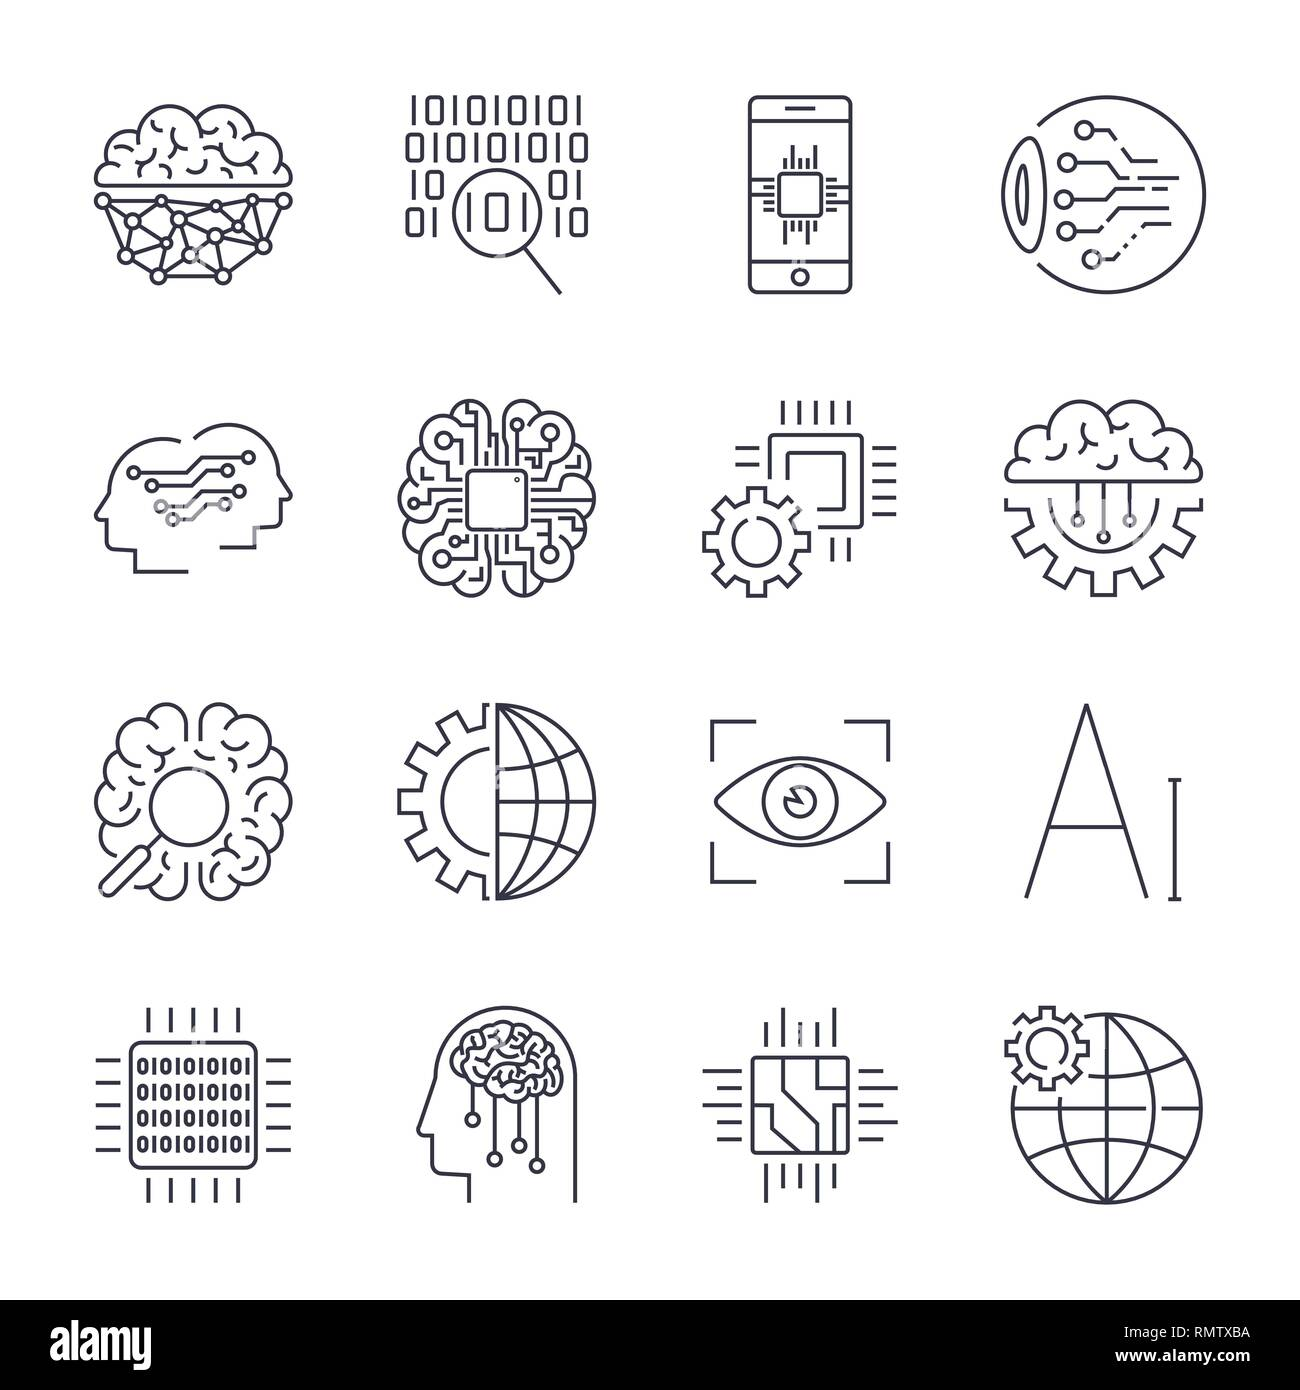 Icons set for artificial intelligence AI concept. Artificial intelligence AI line icons. Innovation technology manufacturing and programming. Editable - Stock Image